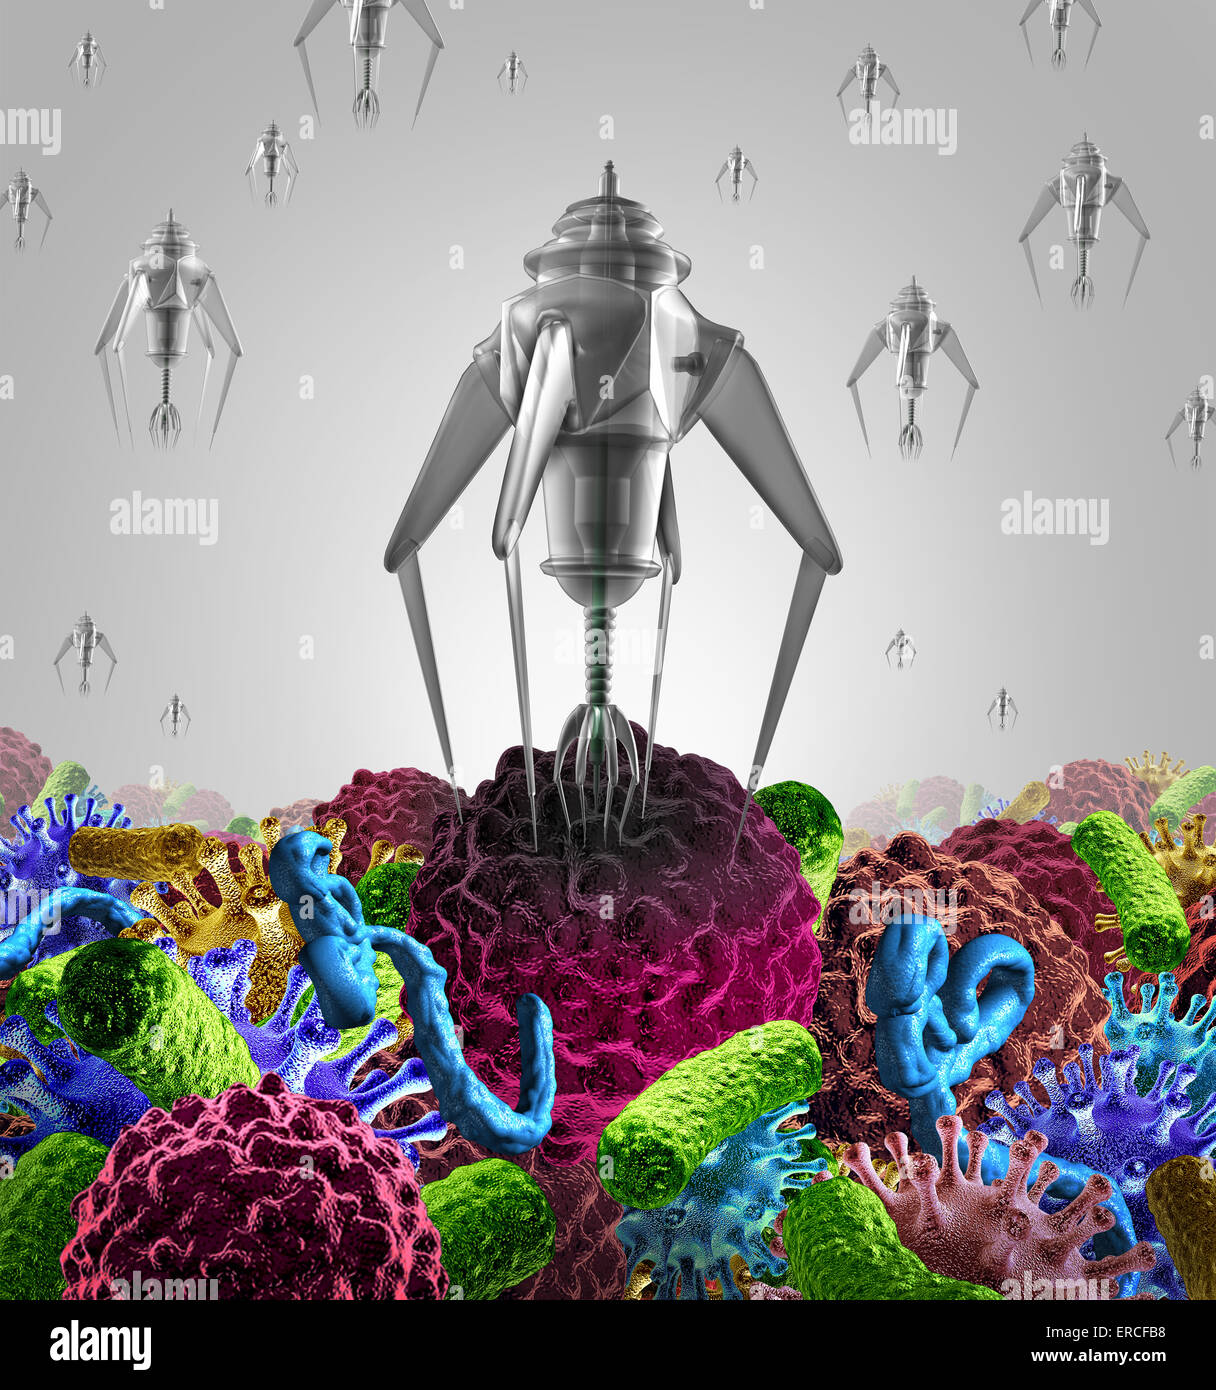 Nanotechnology medical therapy medicine concept as a group of microscopic nano robots or nanobots programed to kill - Stock Image